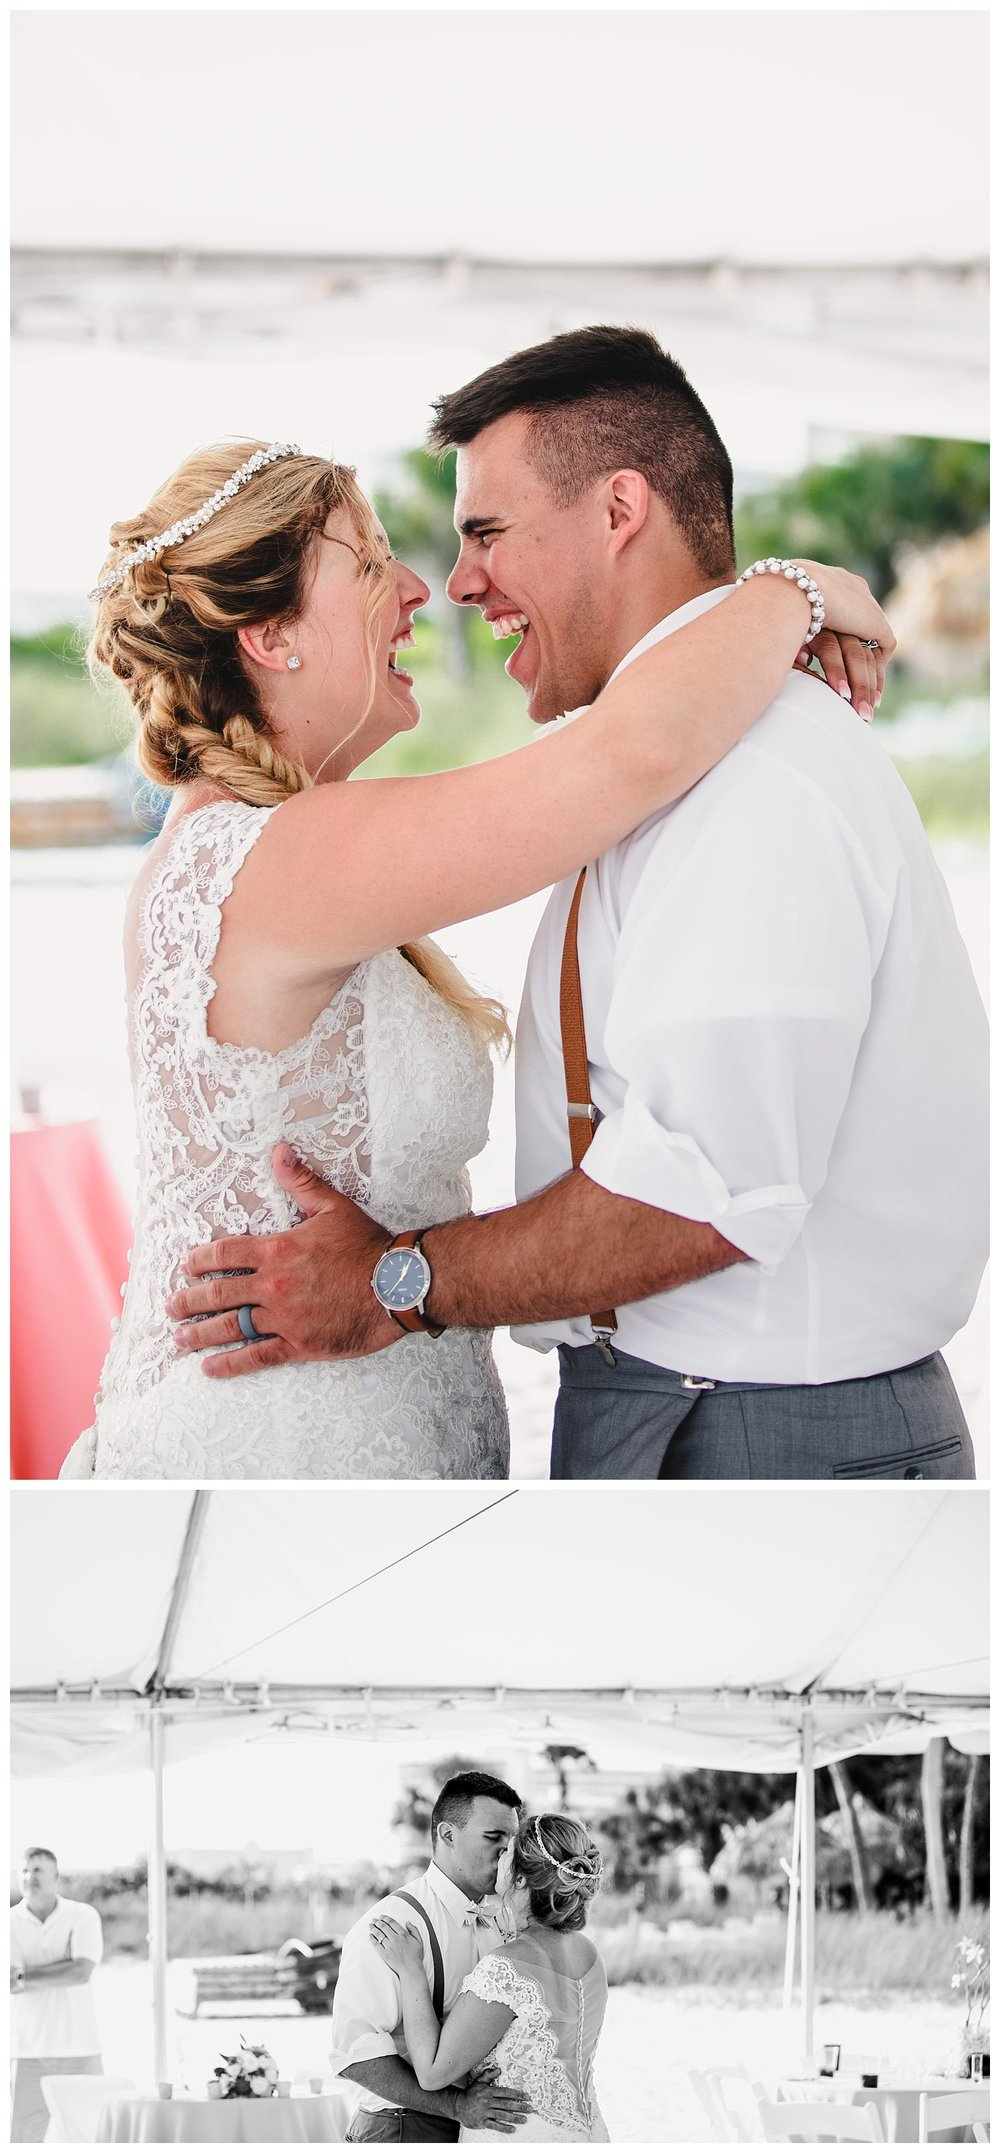 Kelsey_Diane_Photography_Destination_Wedding_Sarasota_Florida_Beach_Wedding_Alex_Austin_0663.jpg